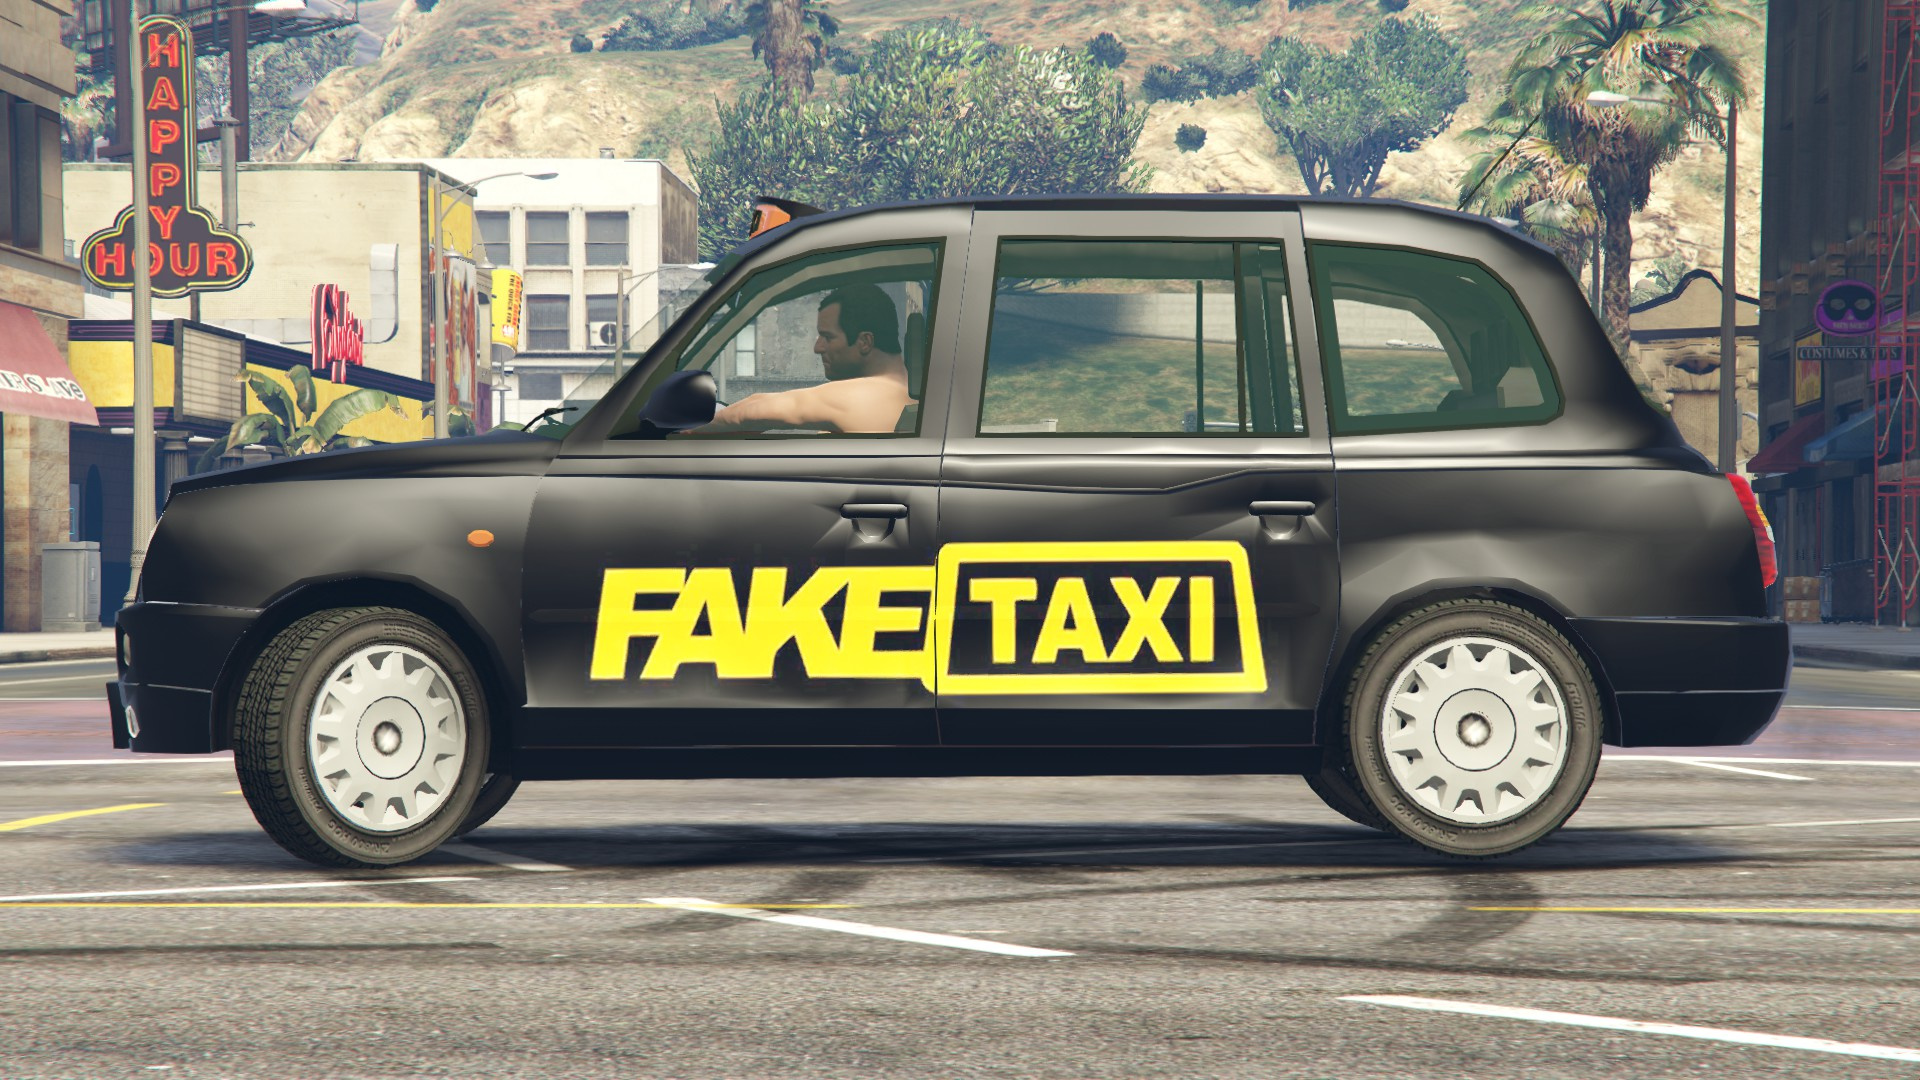 Fake taxi download